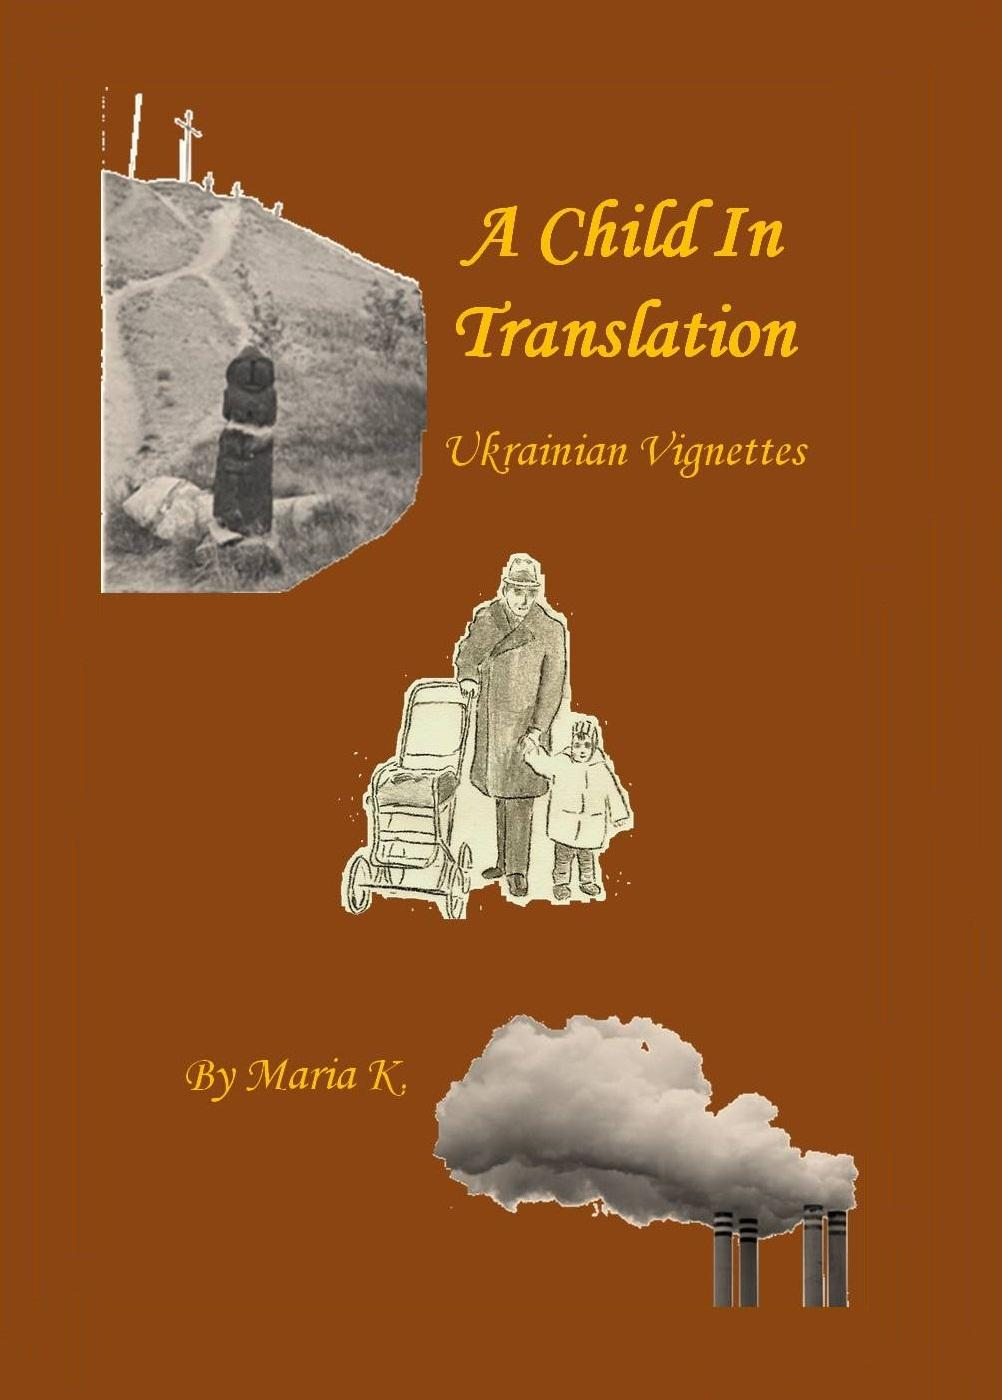 A Child in Translation